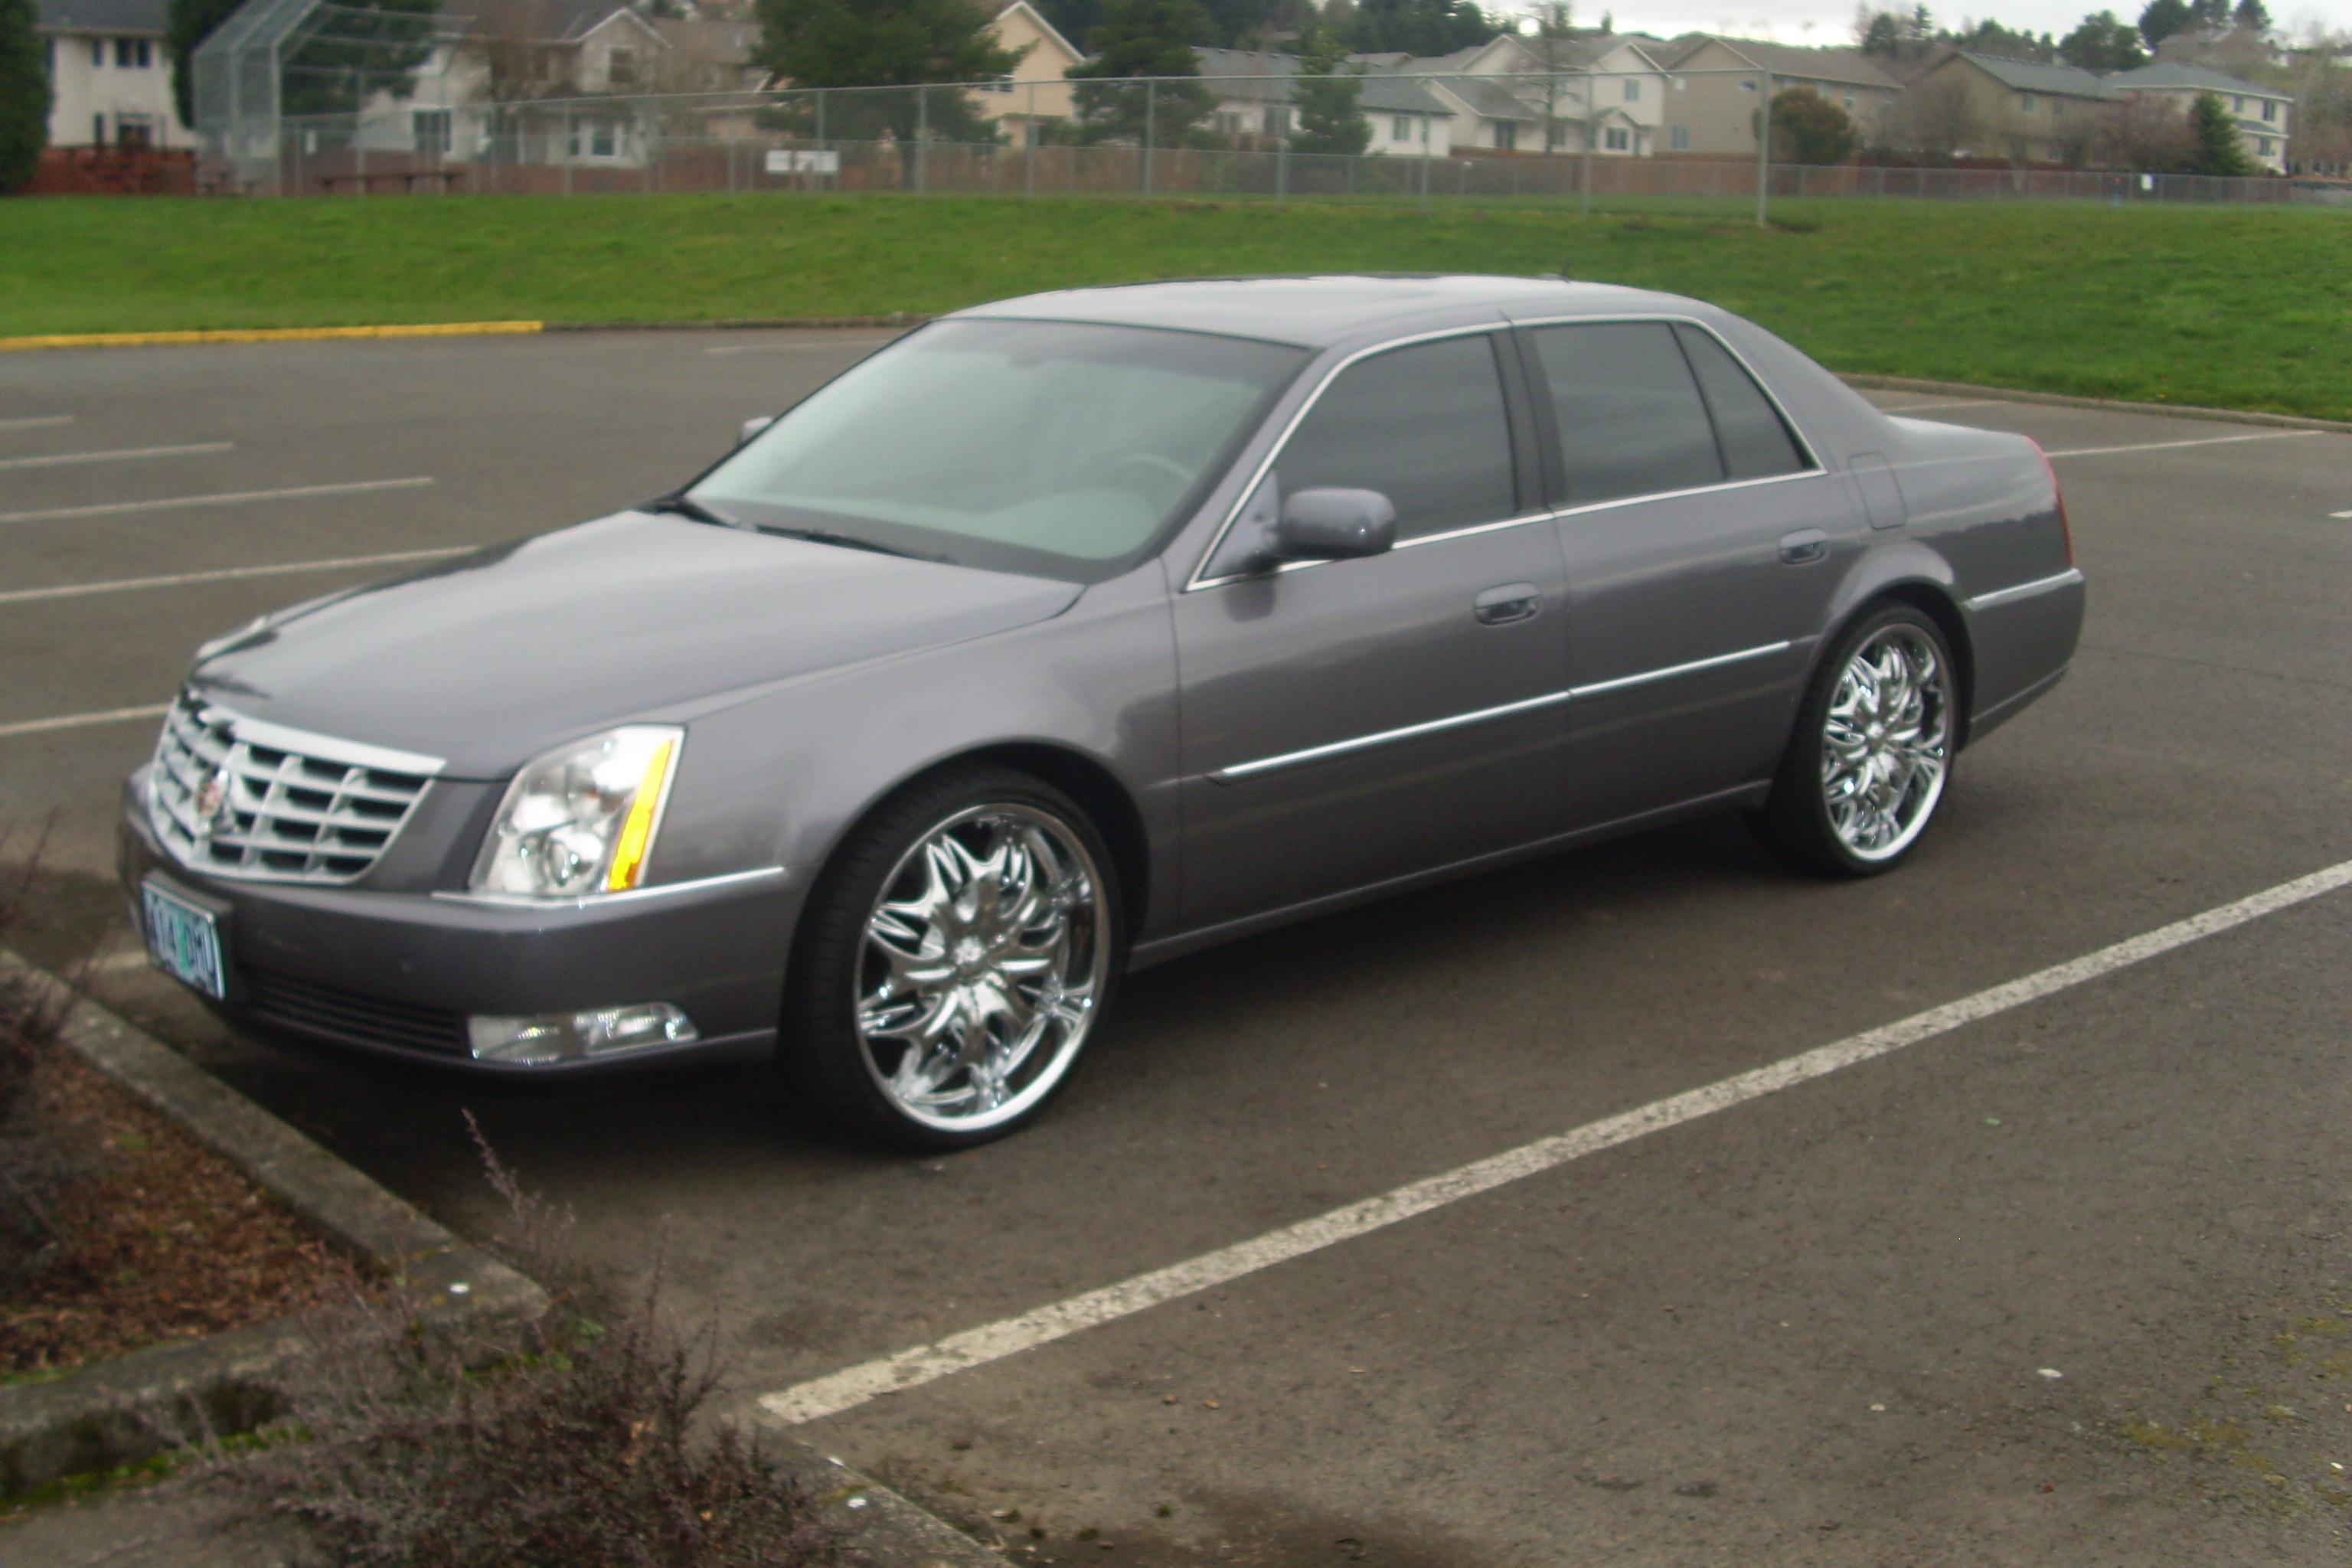 dts carfinder louisville online en copart sale auto lot of white cadillac ky certificate in auctions on title